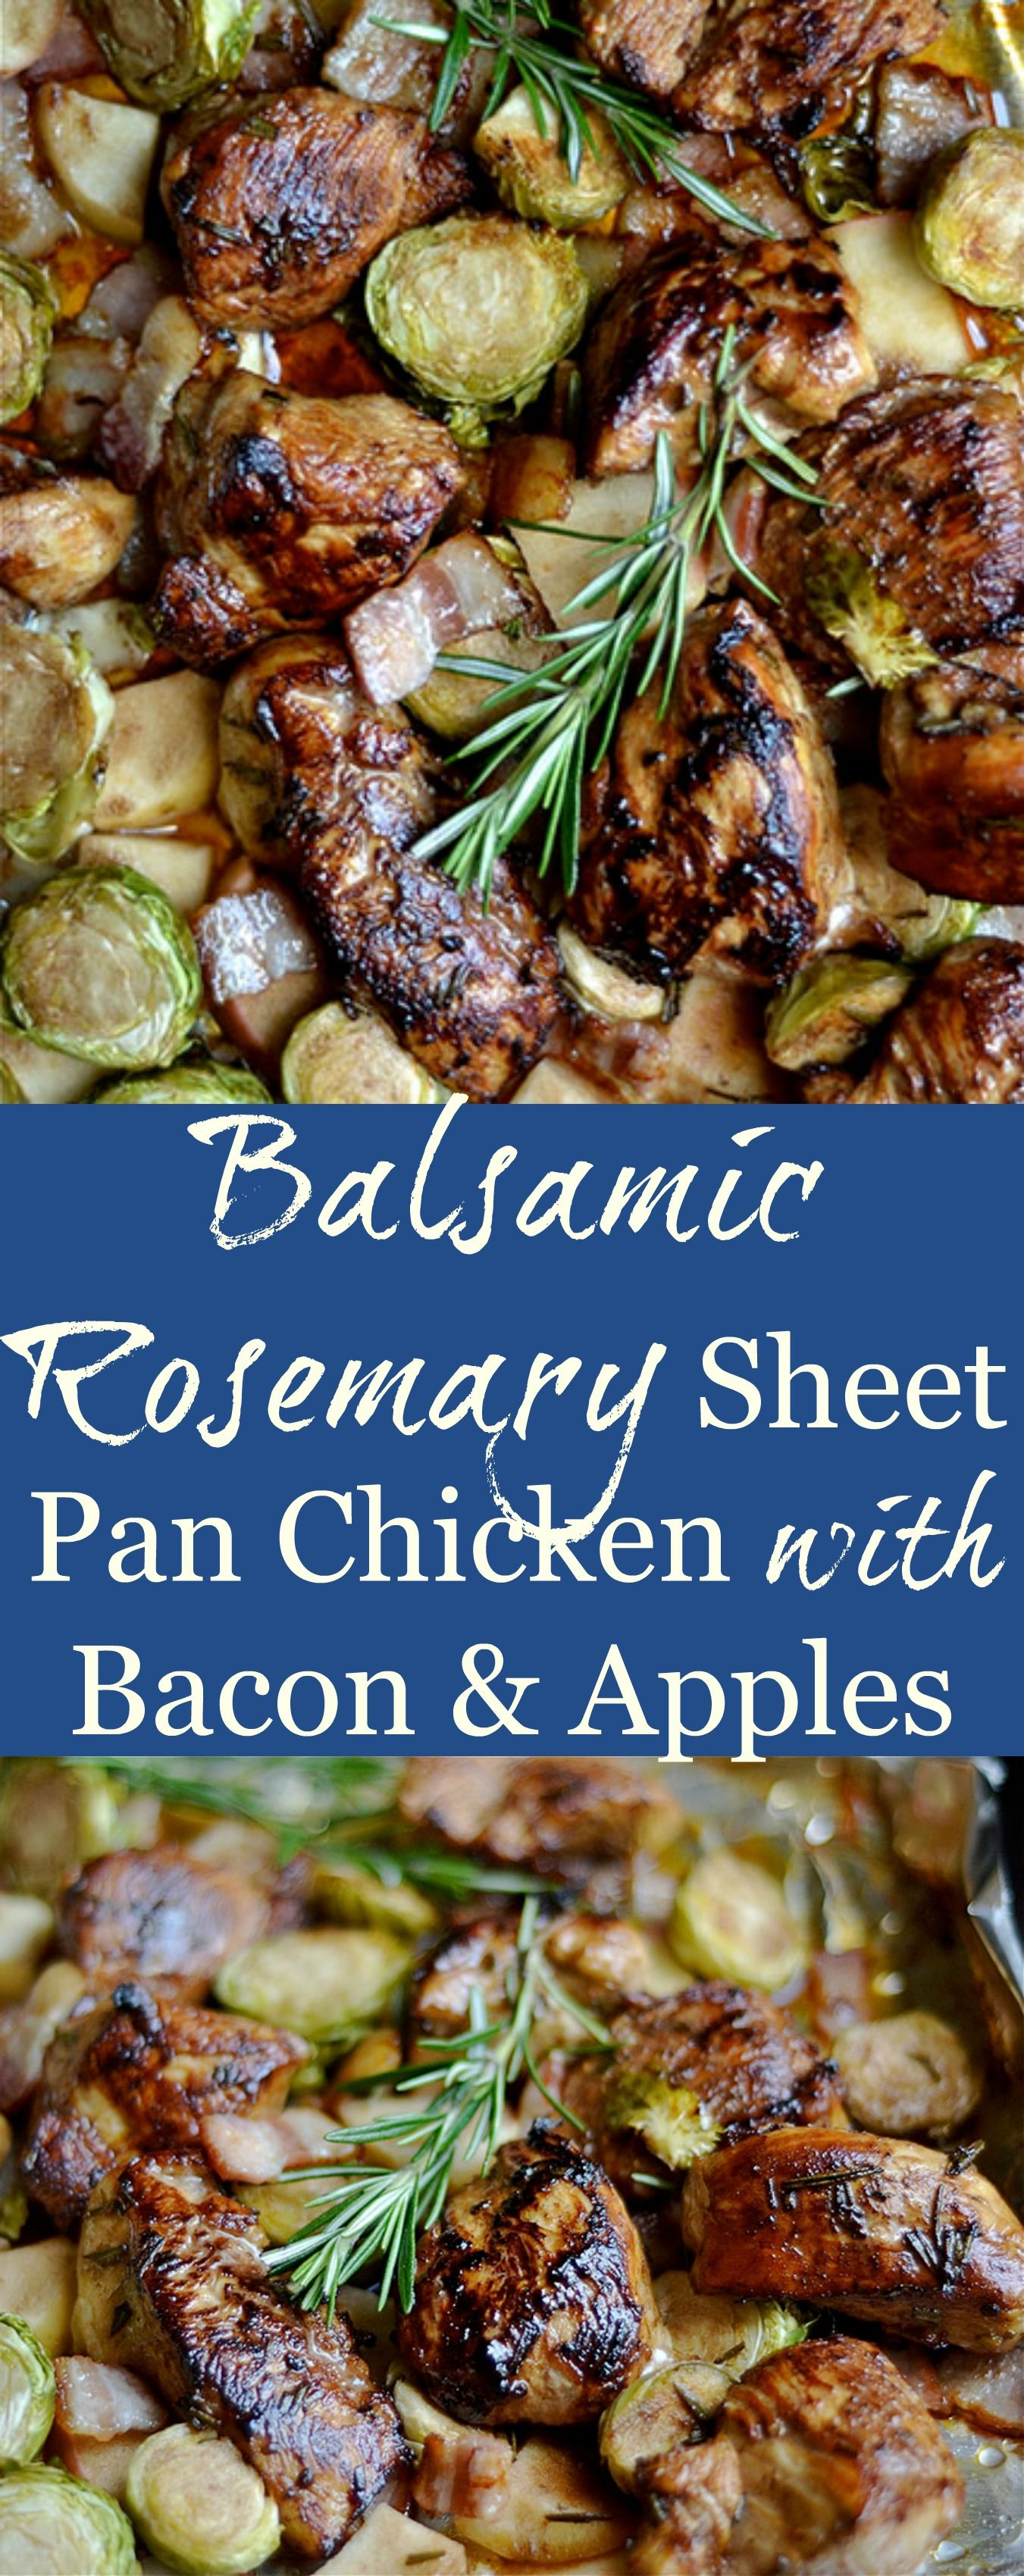 Rosemary Balsamic Sheet Pan Chicken with Bacon and Apples